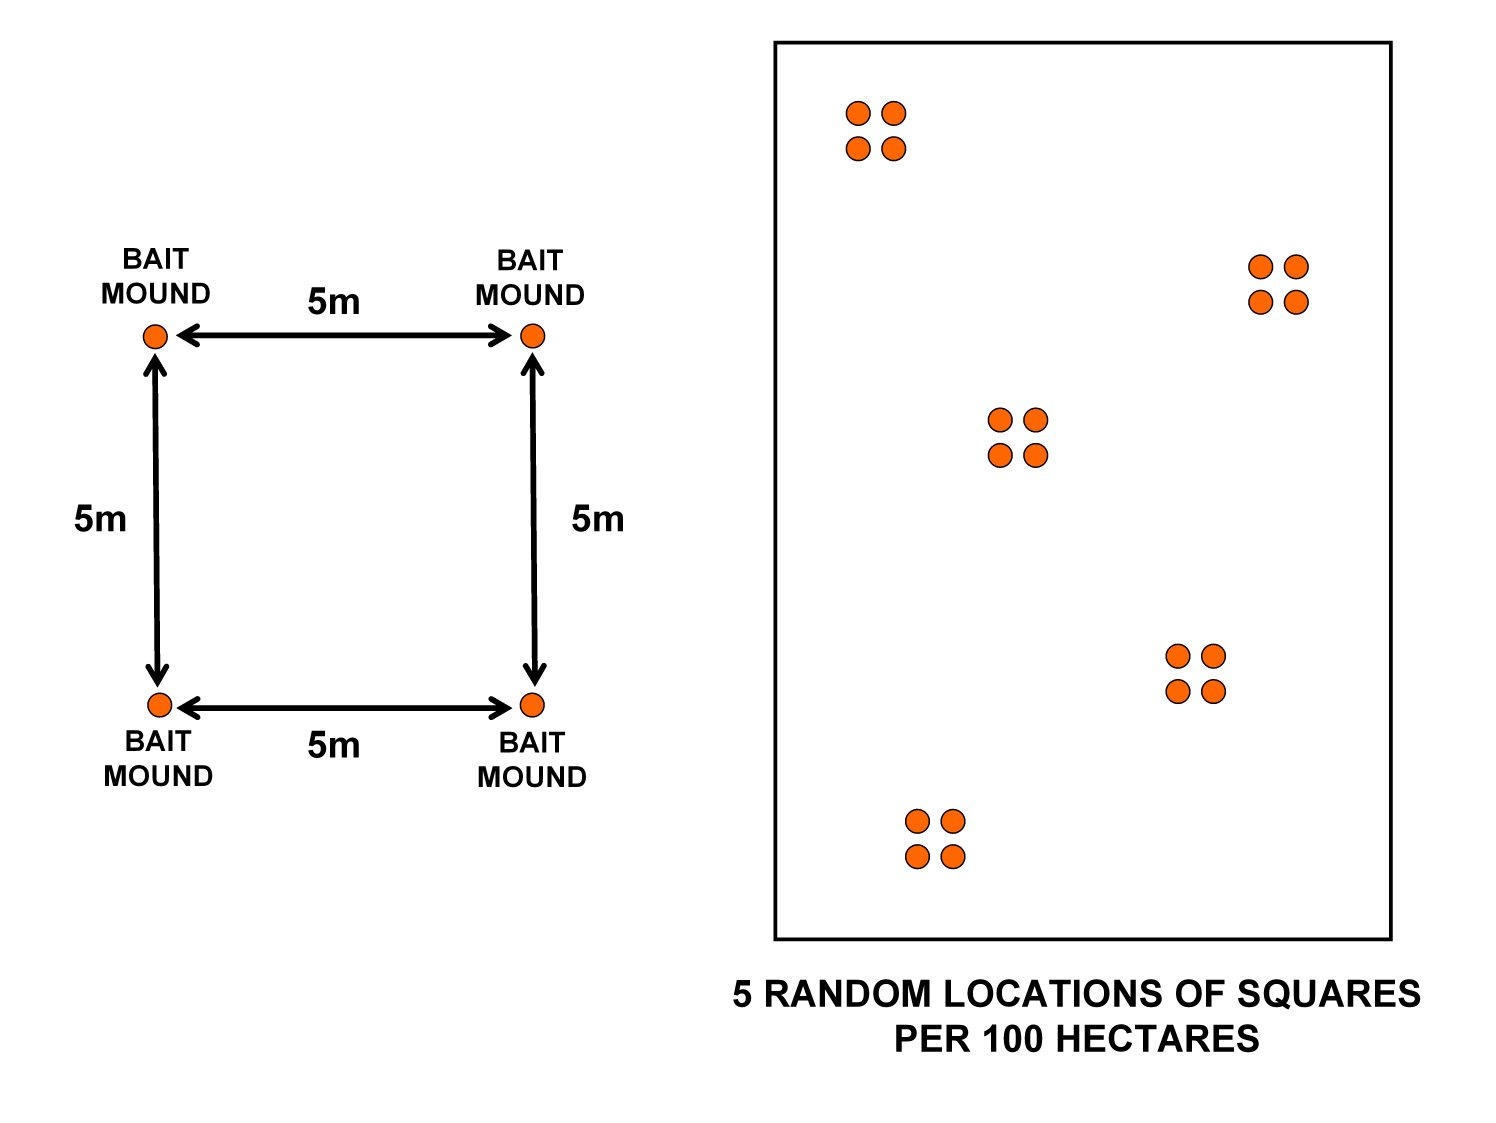 Diagram of a square with 5 metre sides and a bait station in each corner. This is replicated randomly 5 times within a 100 hectare field.